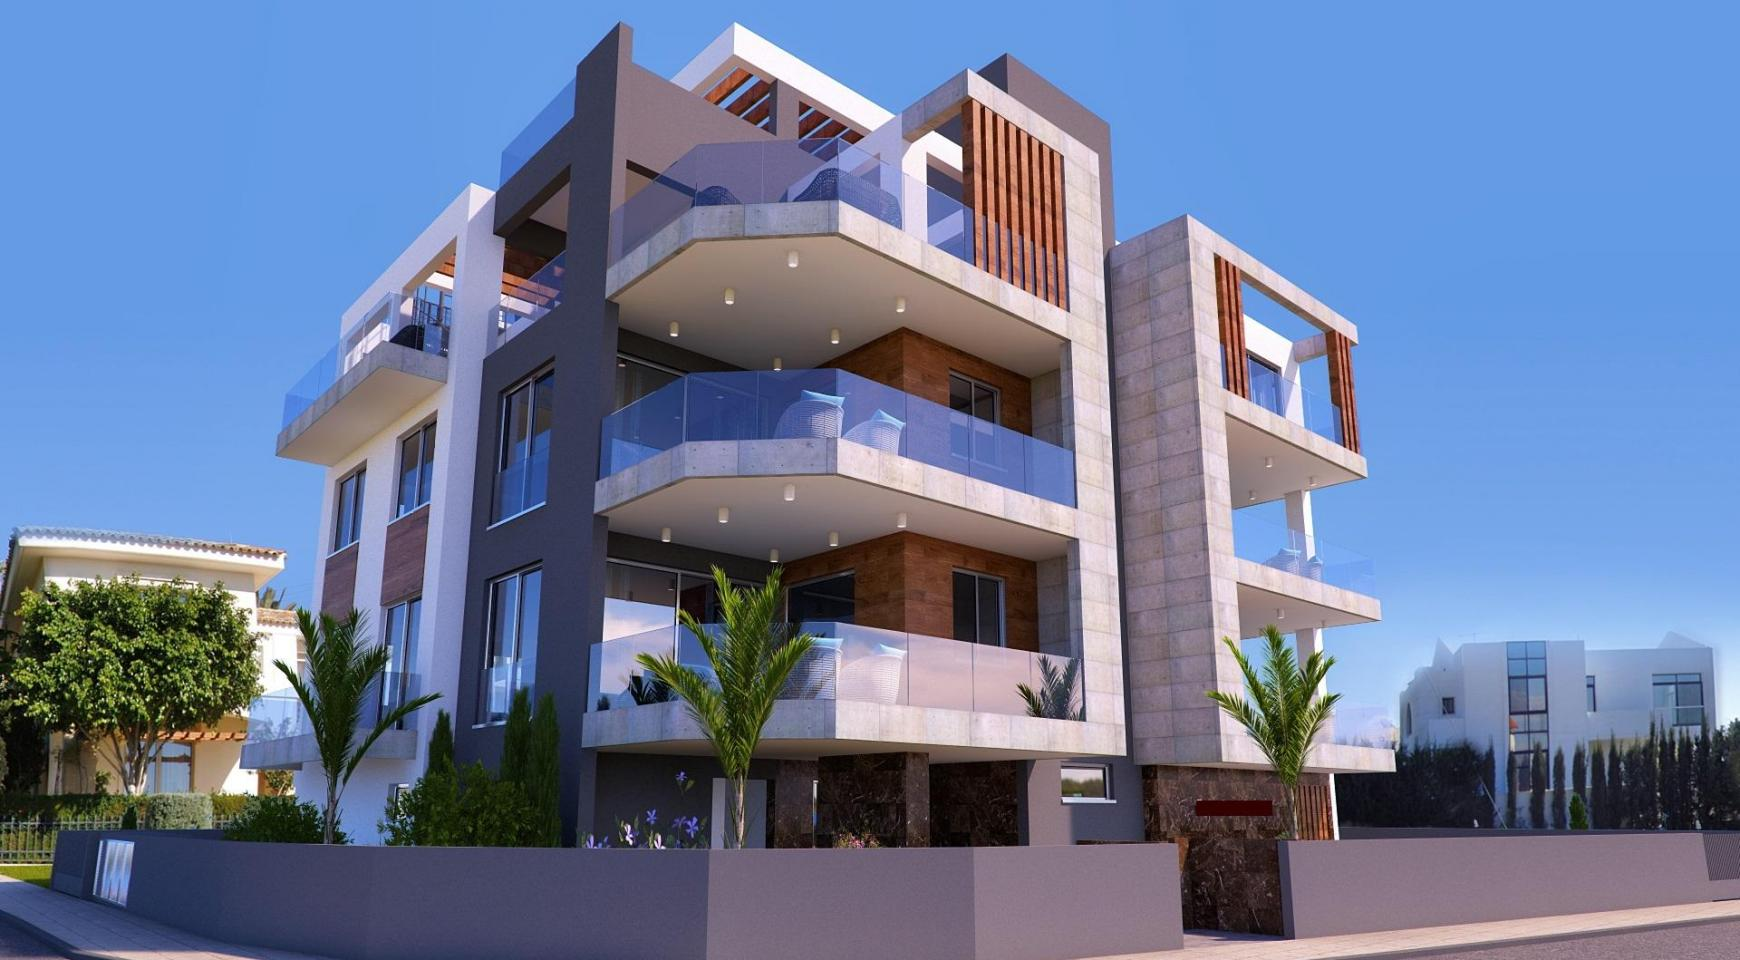 New 3 Bedroom Apartment in a Contemporay Building in Potamos Germasogeia - 1